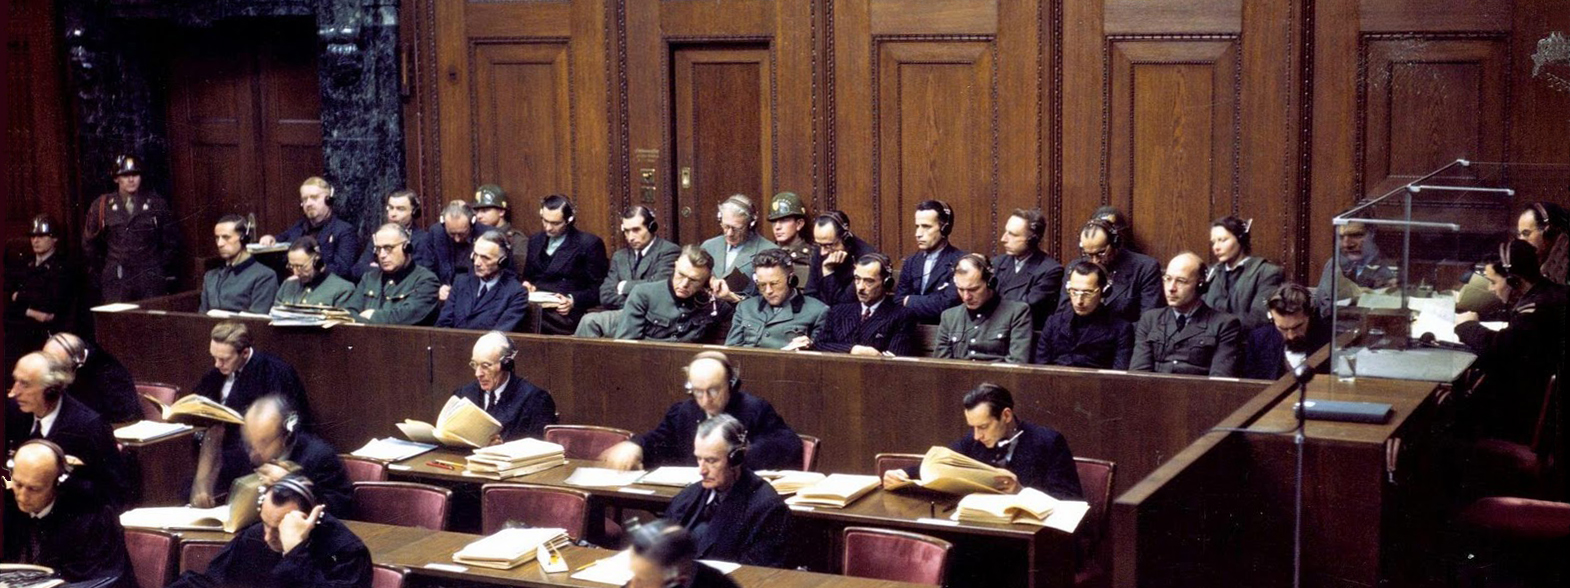 nuremberg-trials-end-nazi-germany-001_ed03